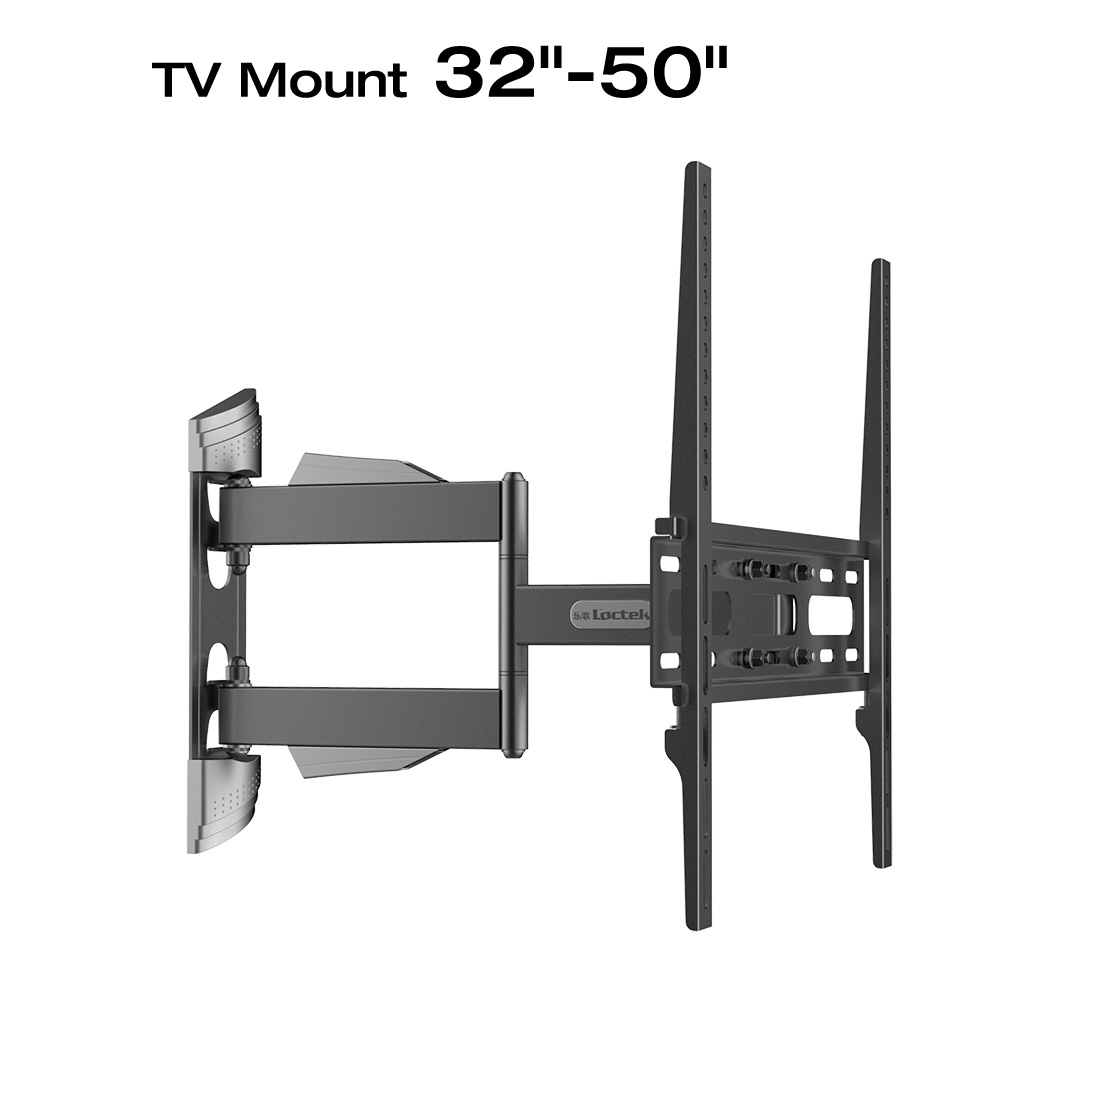 Loctek L3 Full Motion TV Wall Mount Bracket Articulating for 32-50 Inch TV Up to 55lb, Black